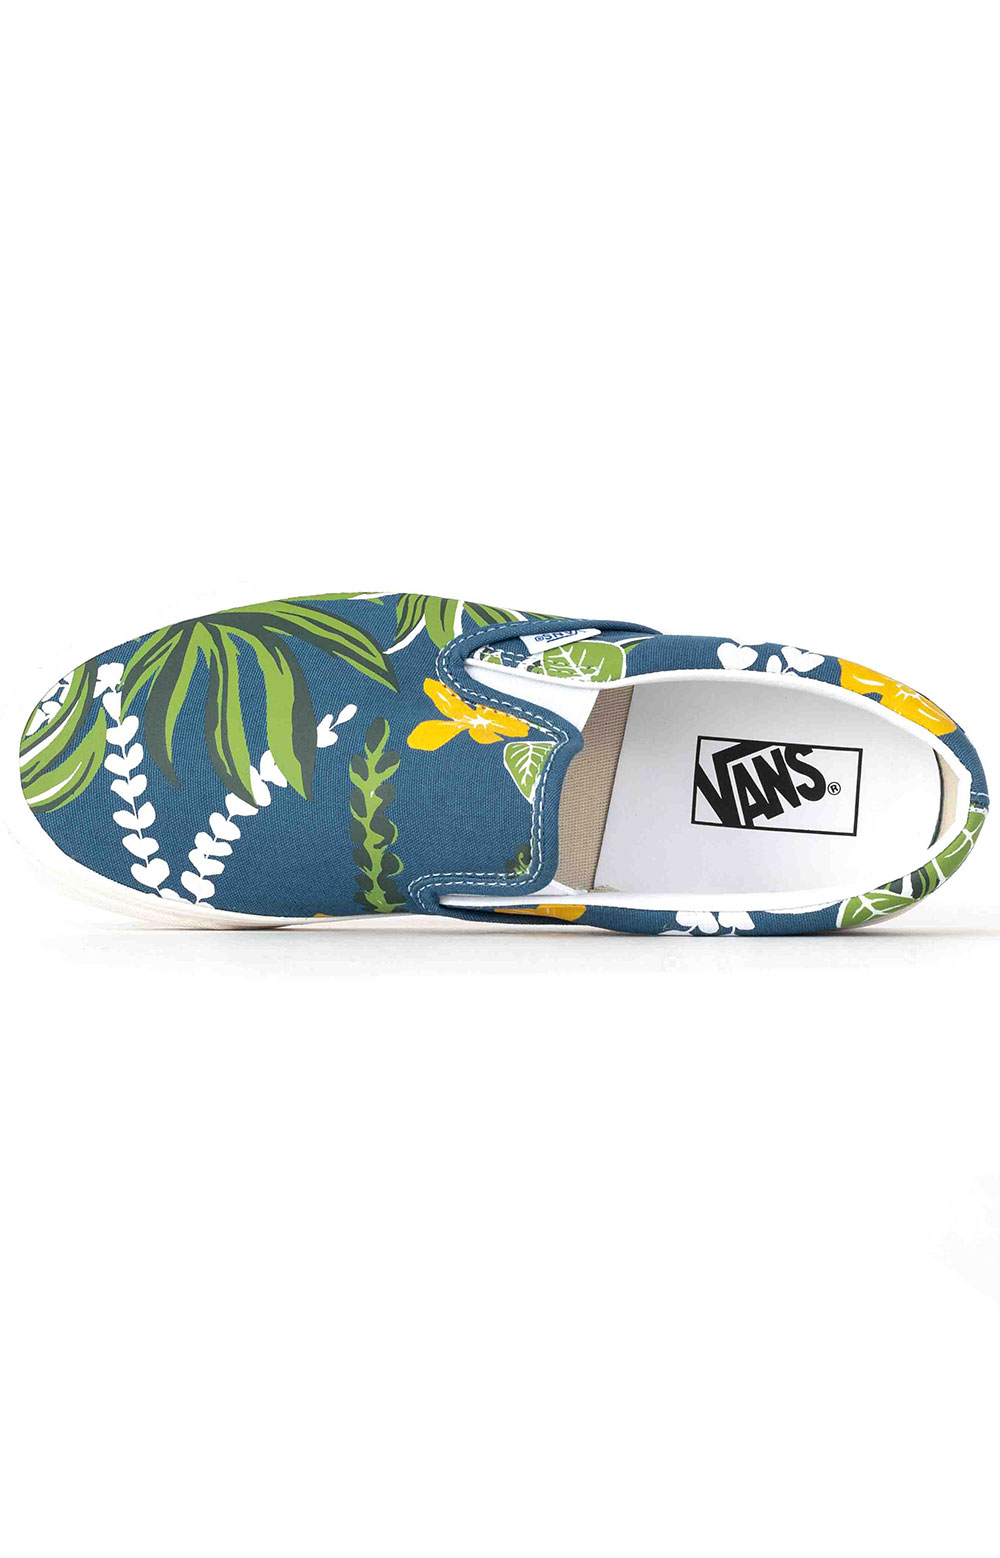 (JEXWVQ) Anaheim Factory Classic Slip-On 98 DX Shoes - OG Aloha Navy 2